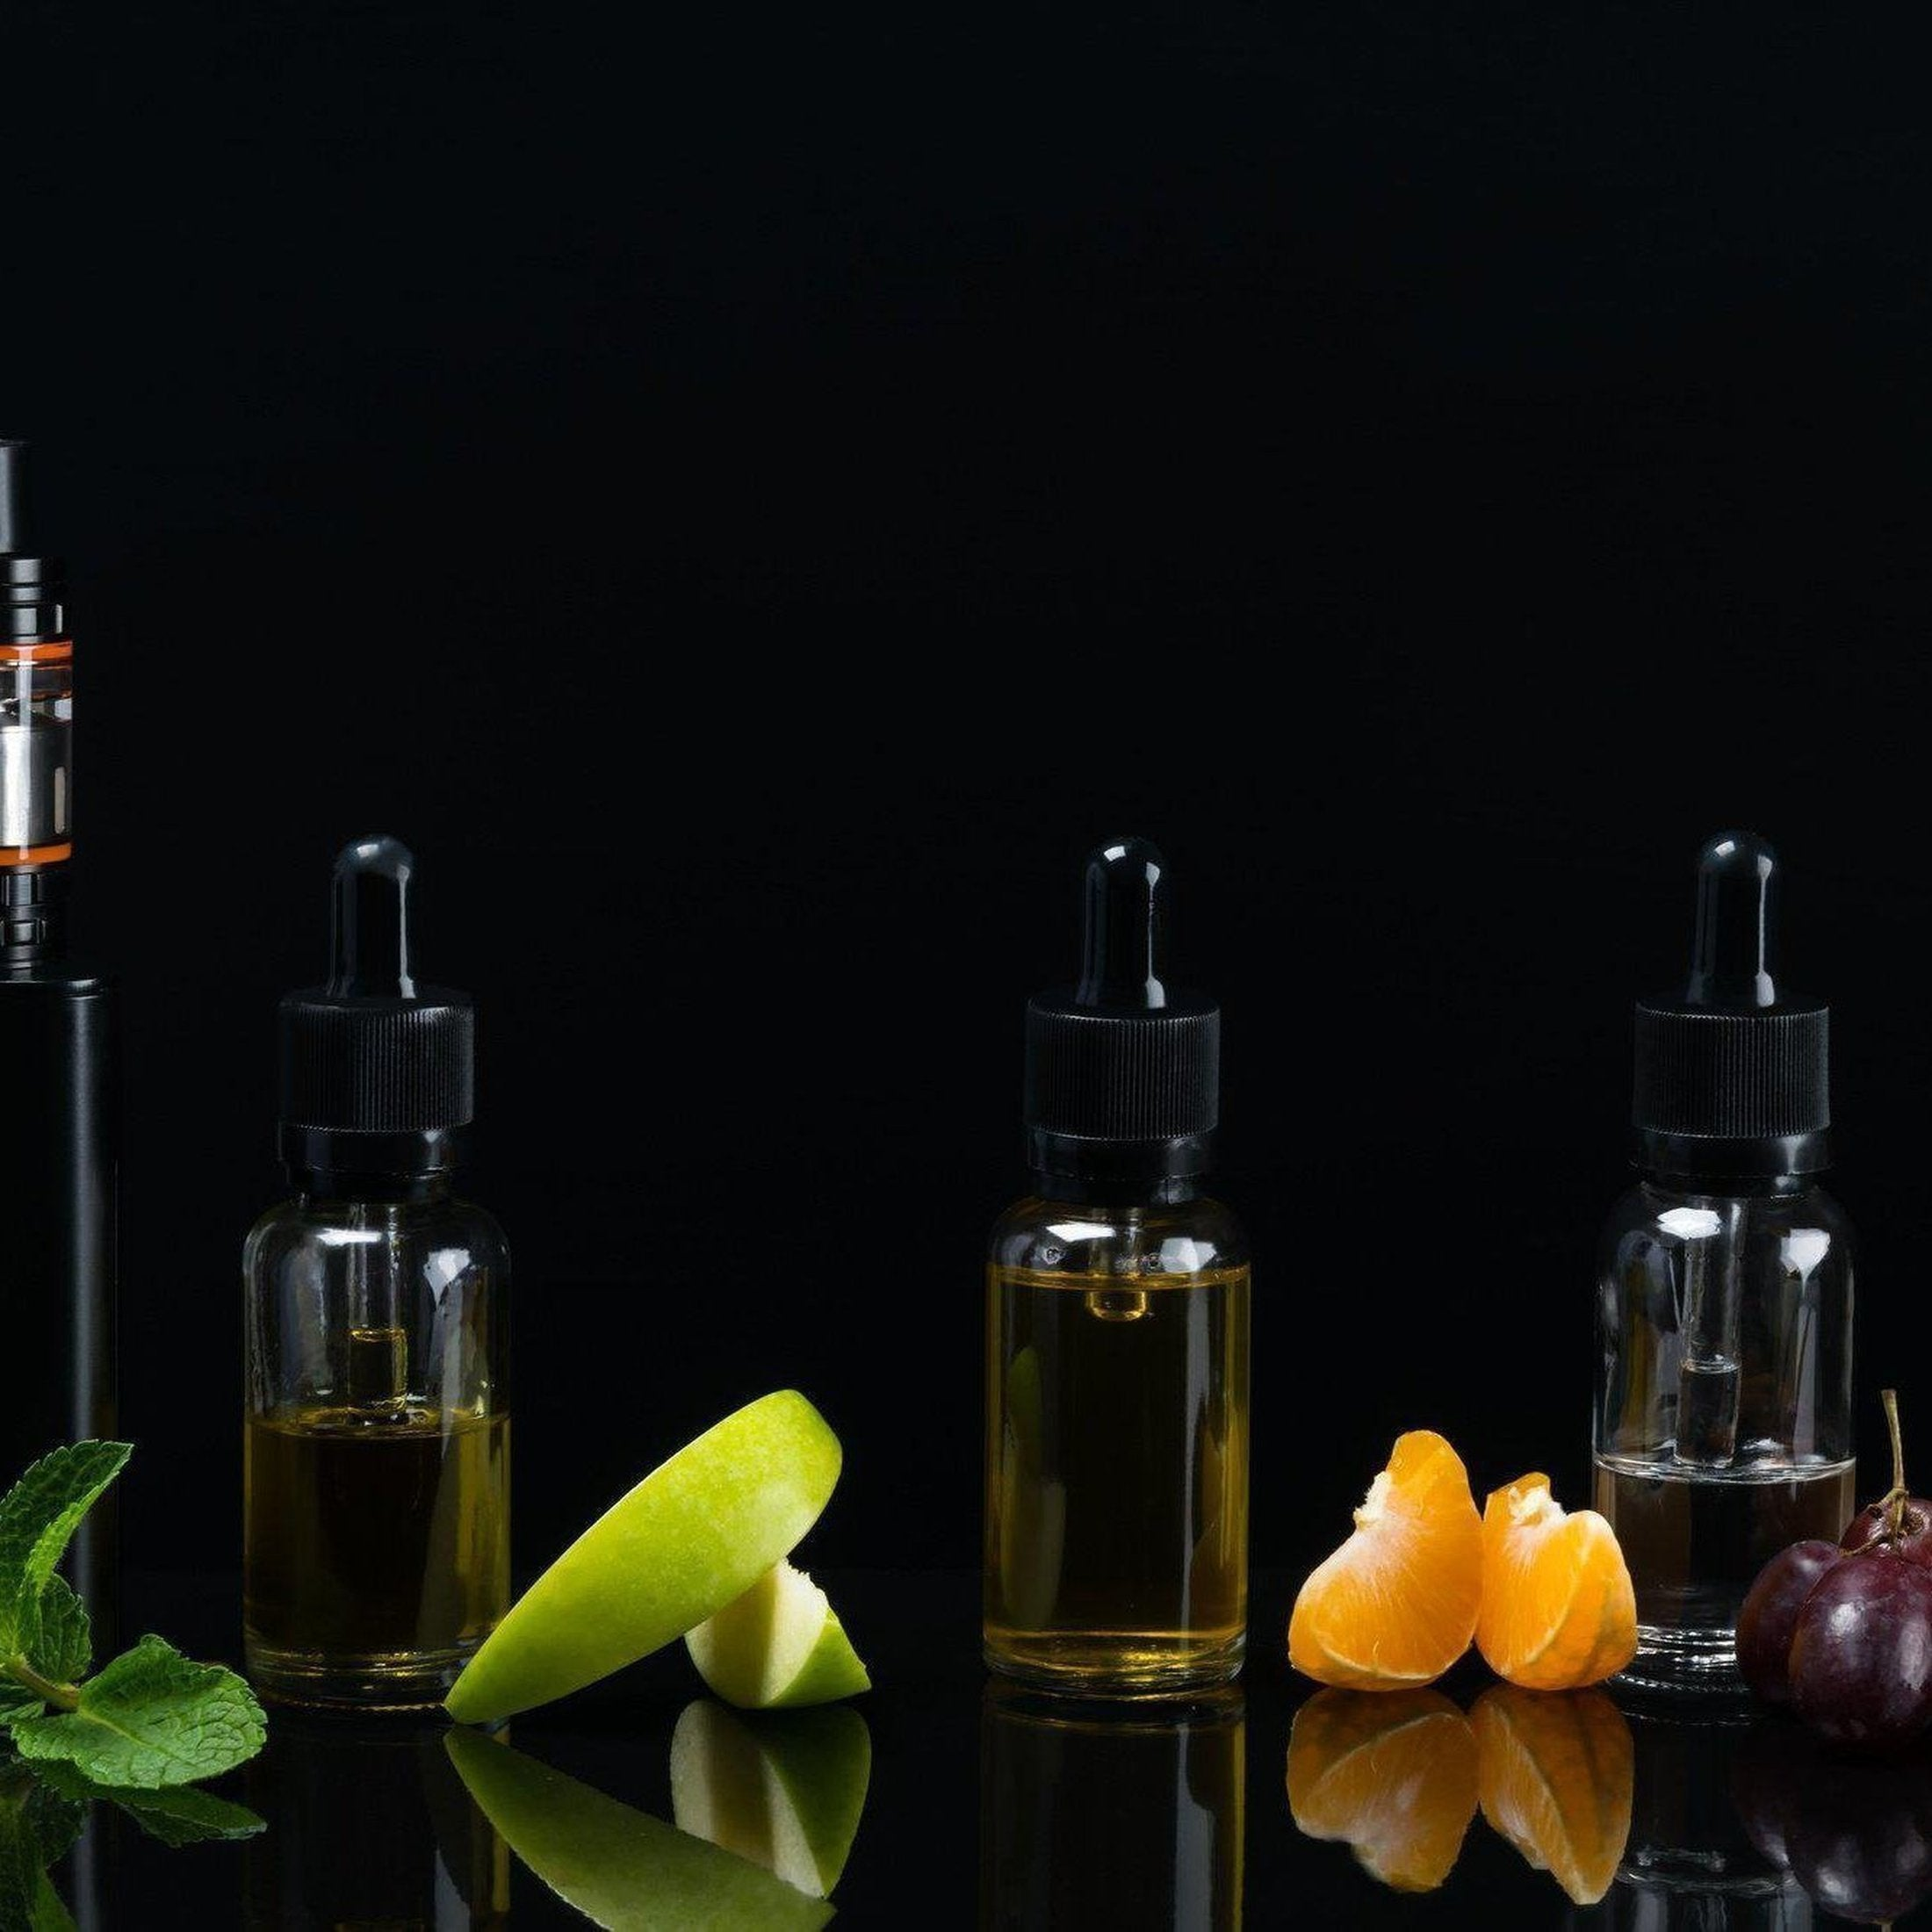 The Most Popular and Best E-Juice Flavor Categories Right Now